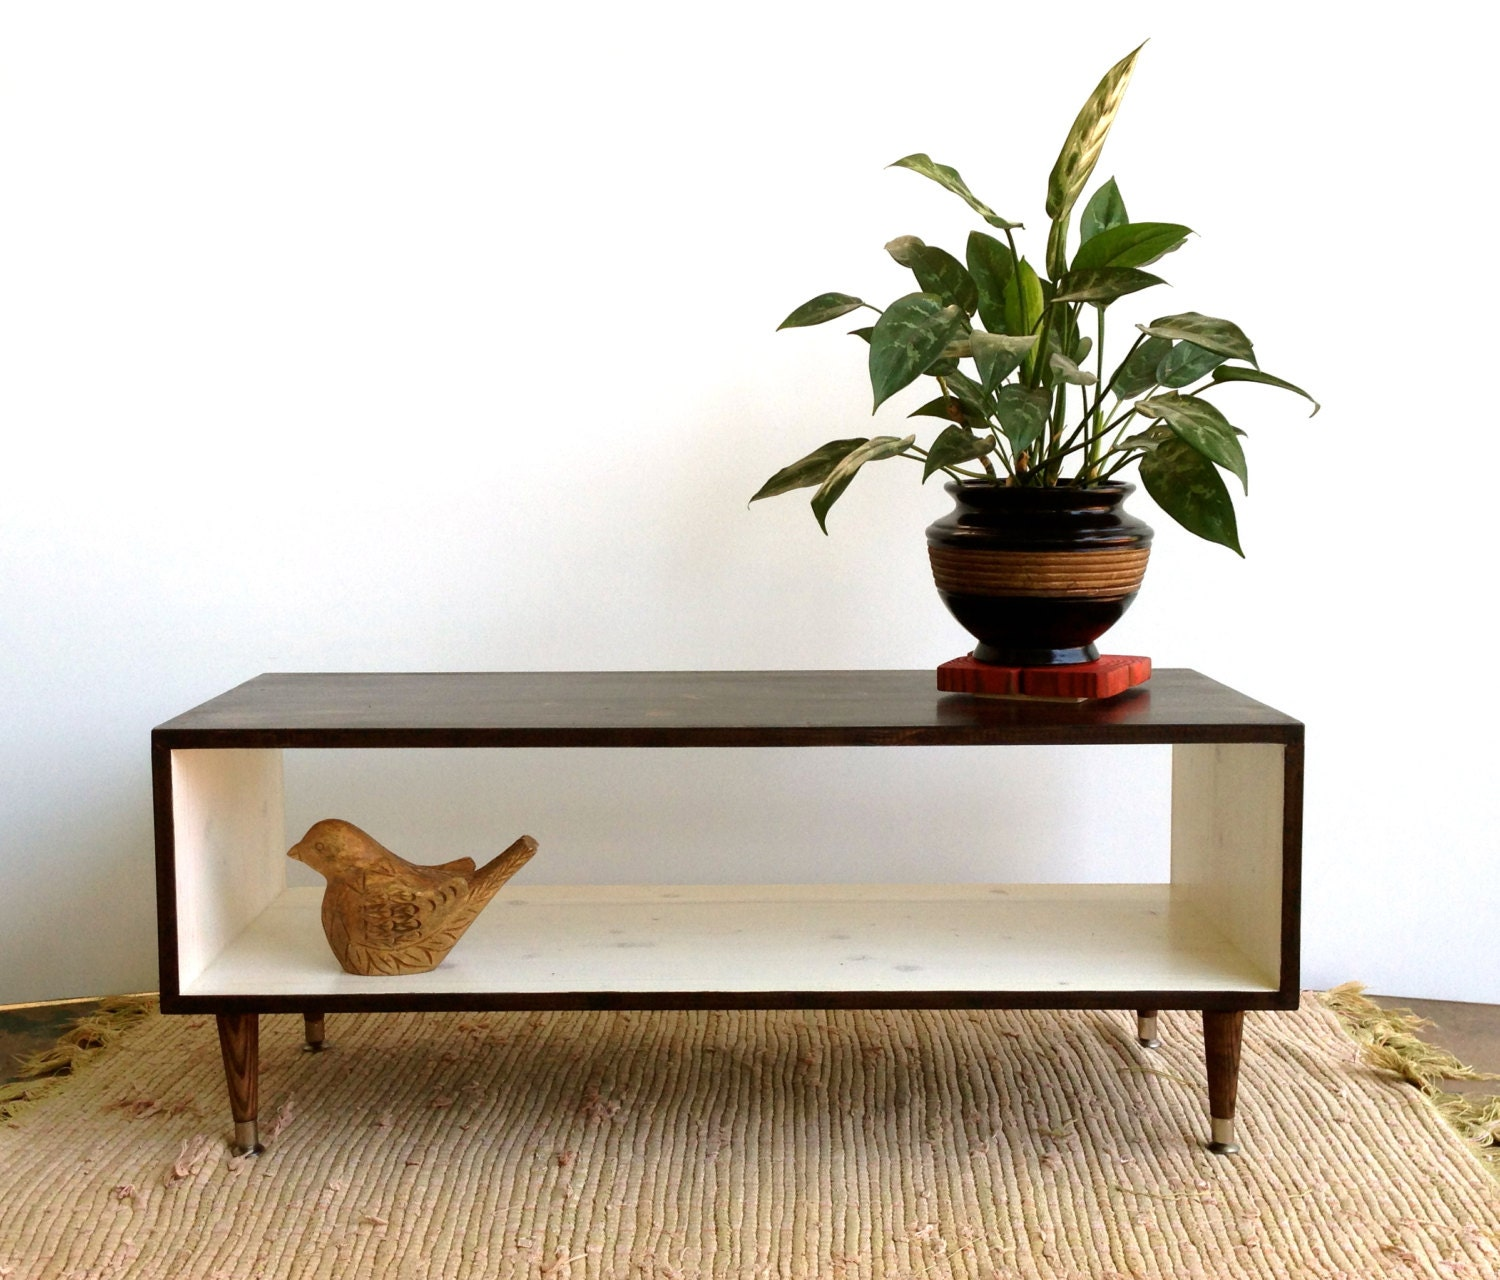 Handmade Coffee Table Mid Century Modern White By Tinylionsdesigns